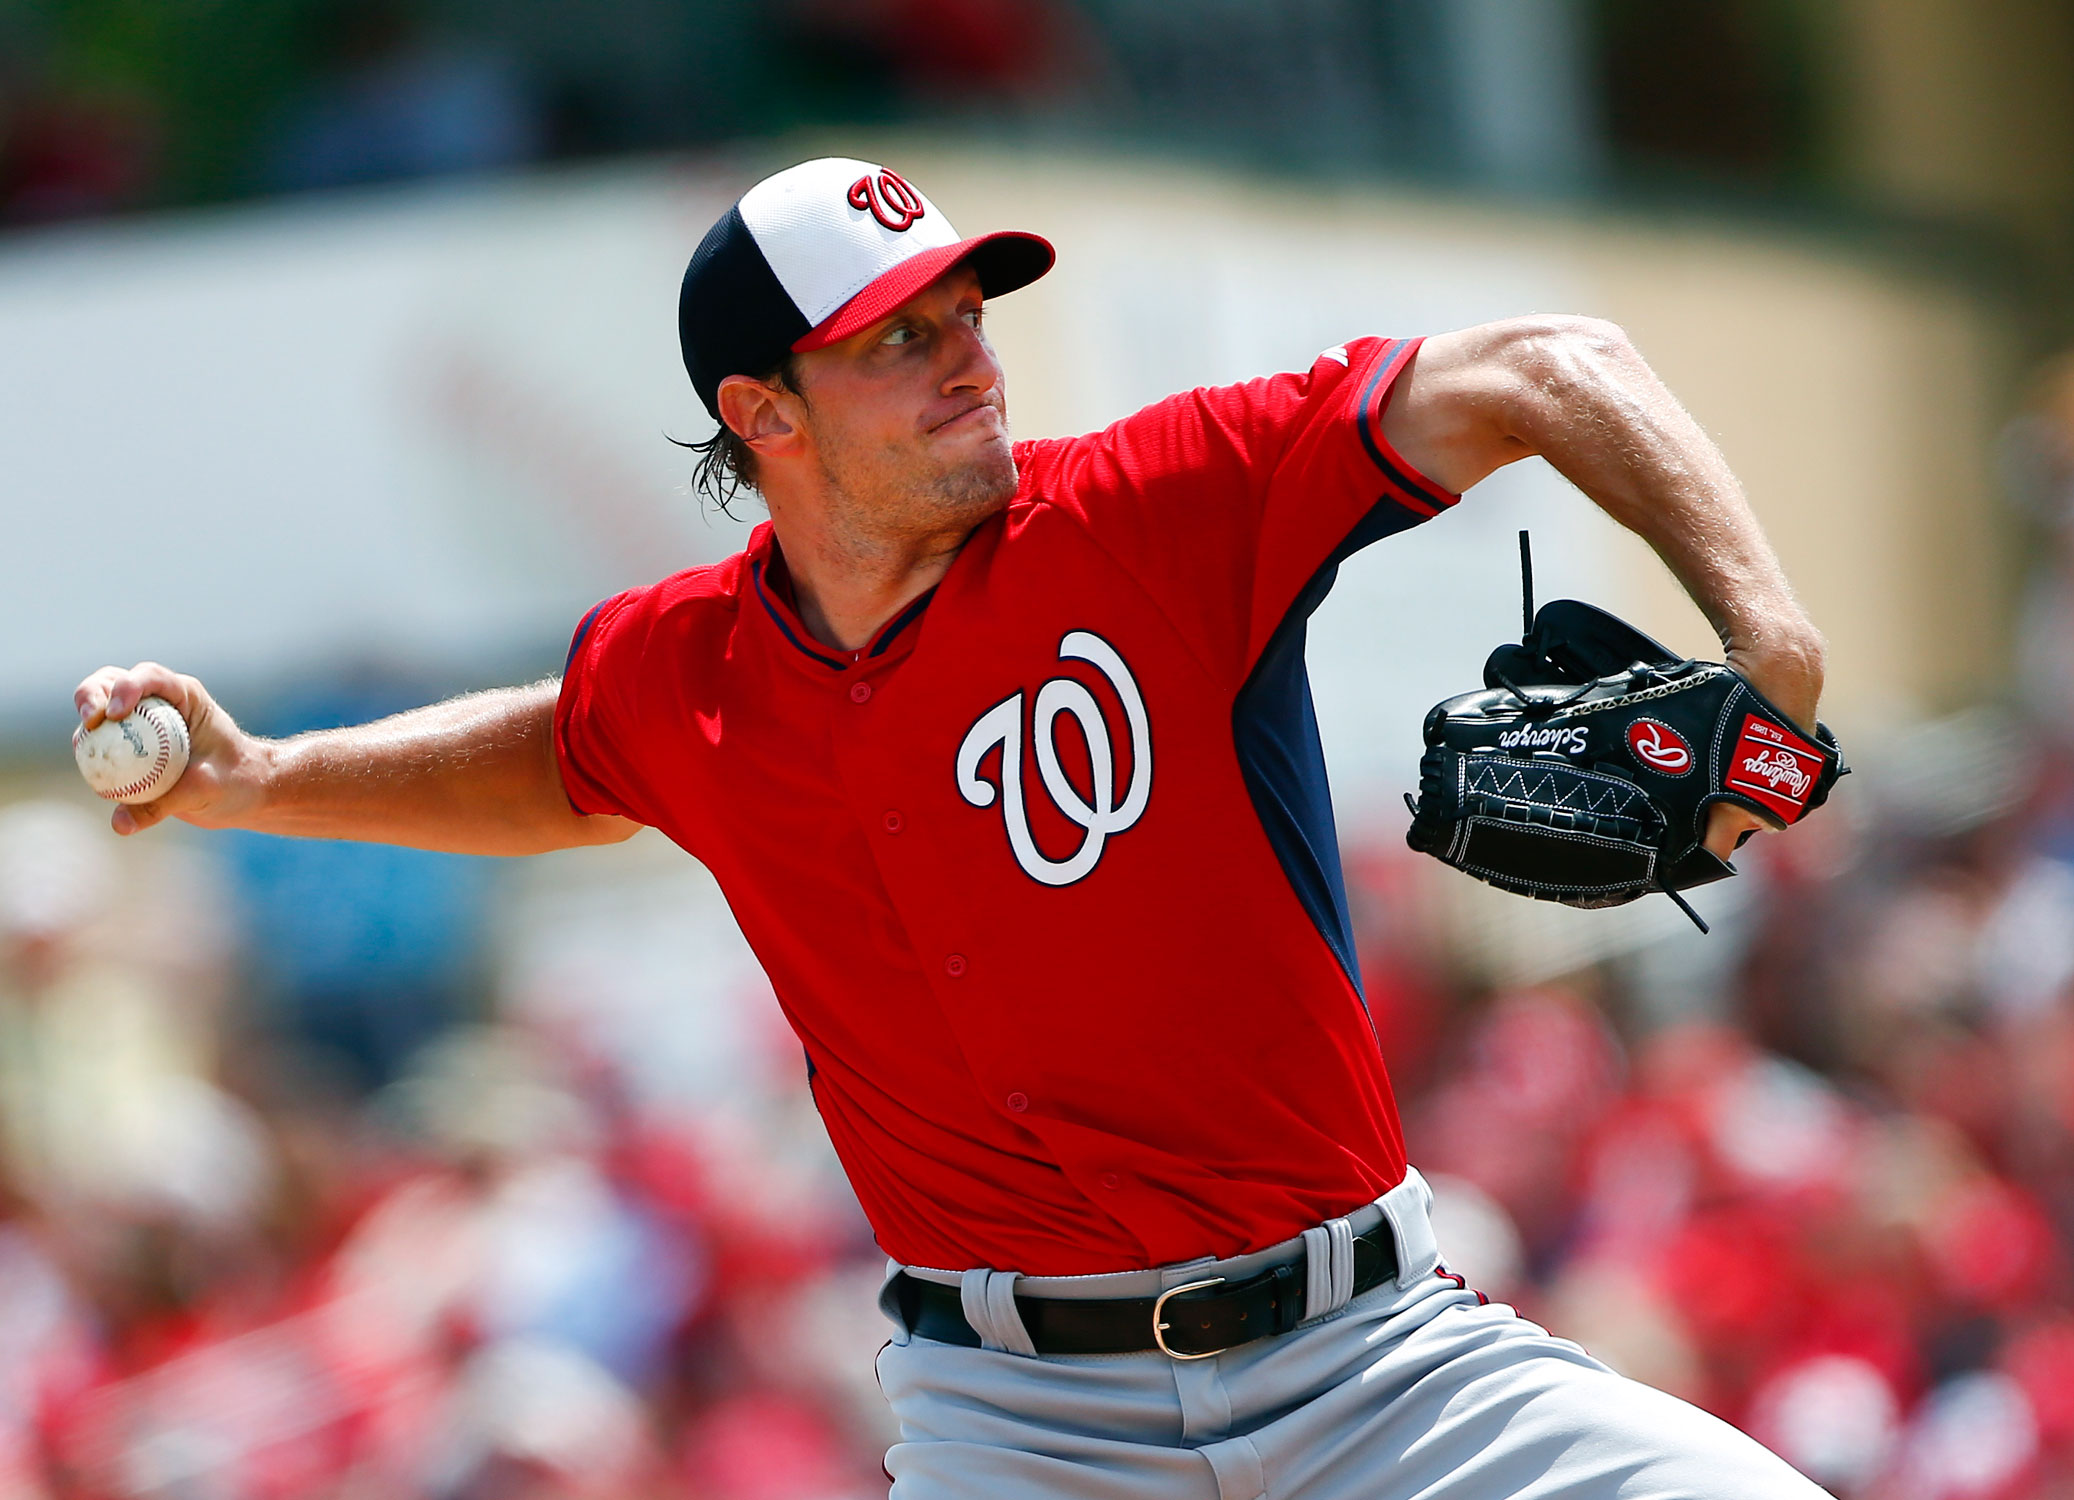 The Nationals' arms race